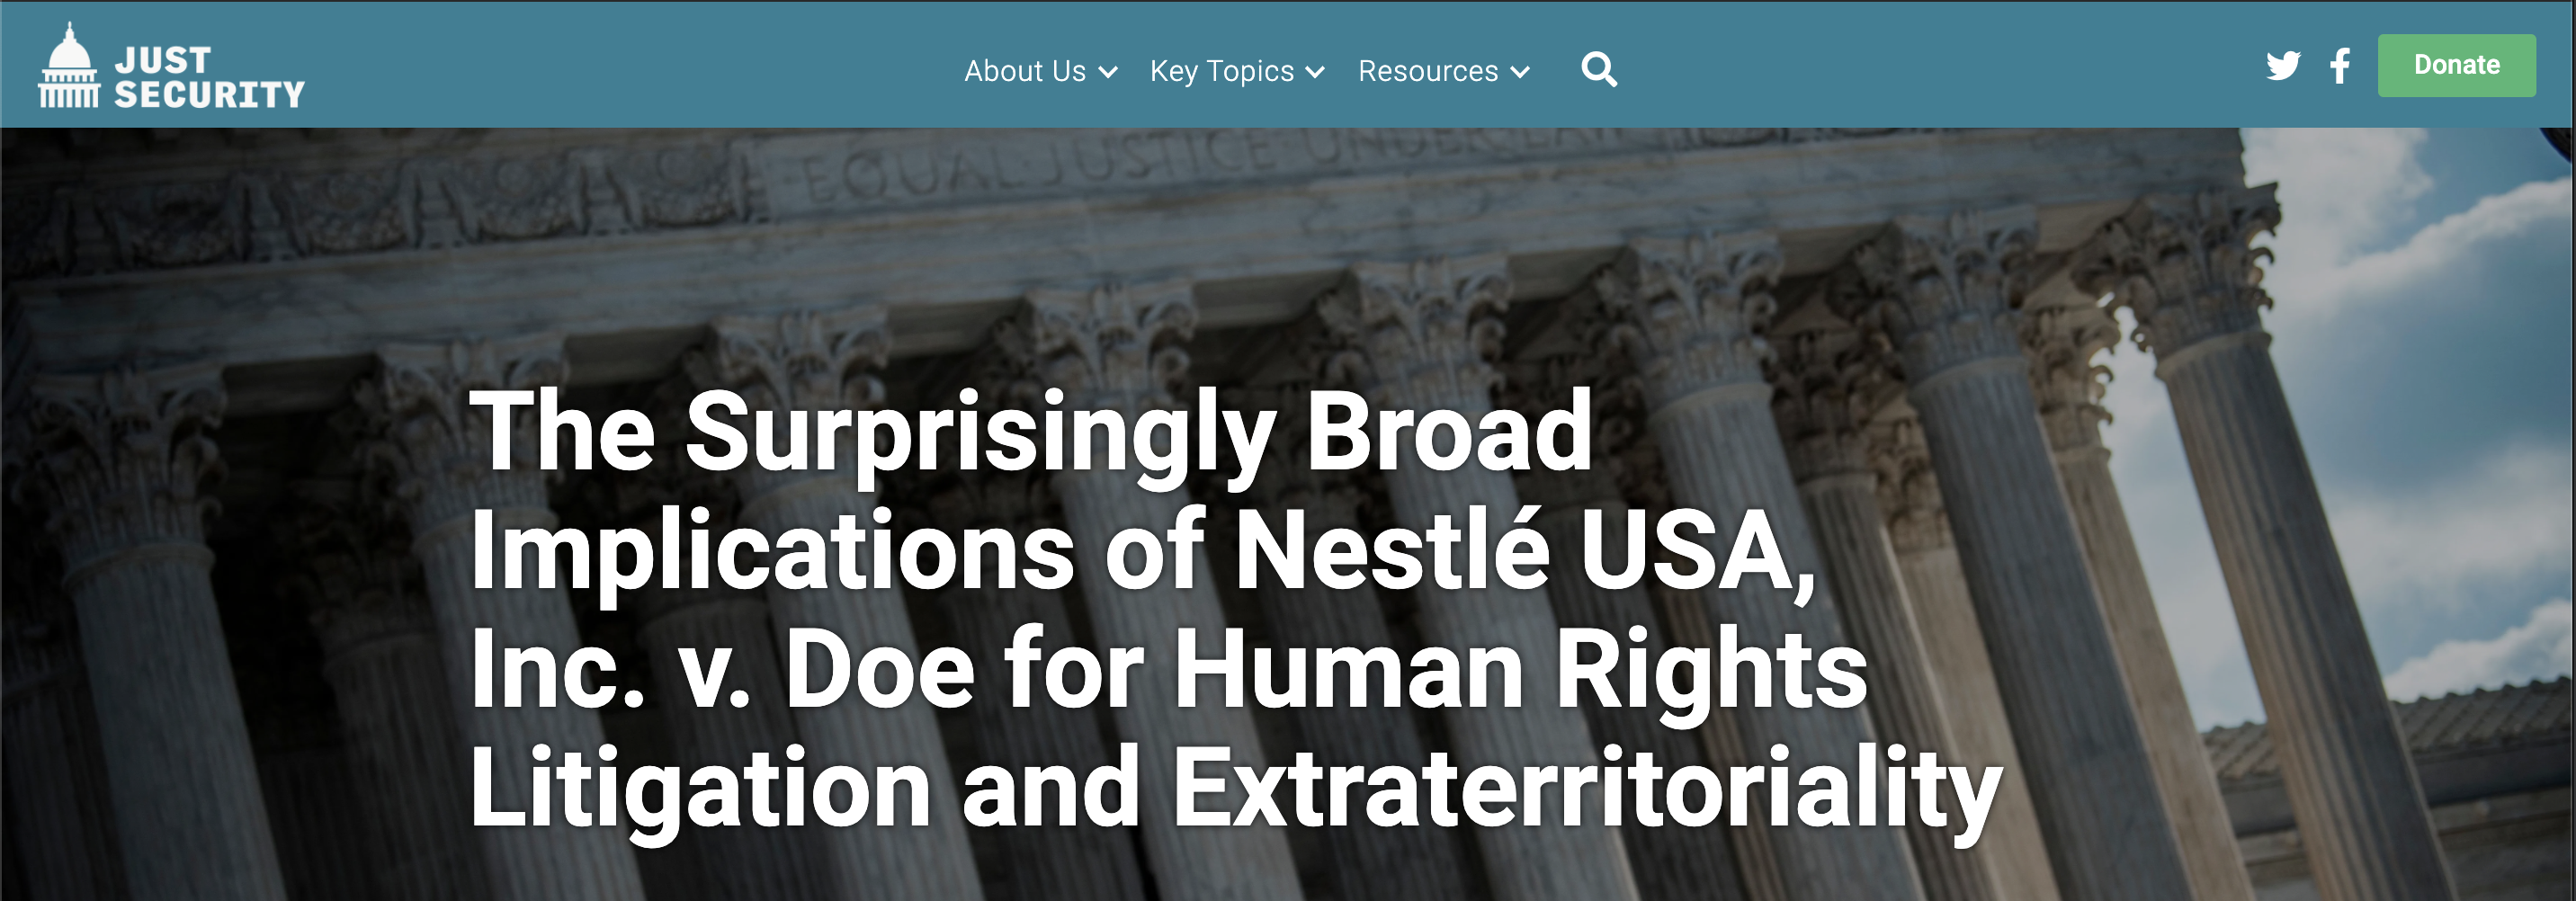 The Surprisingly Broad Implications of Nestlé USA, Inc. v. Doe for Human Rights Litigation and Extraterritoriality